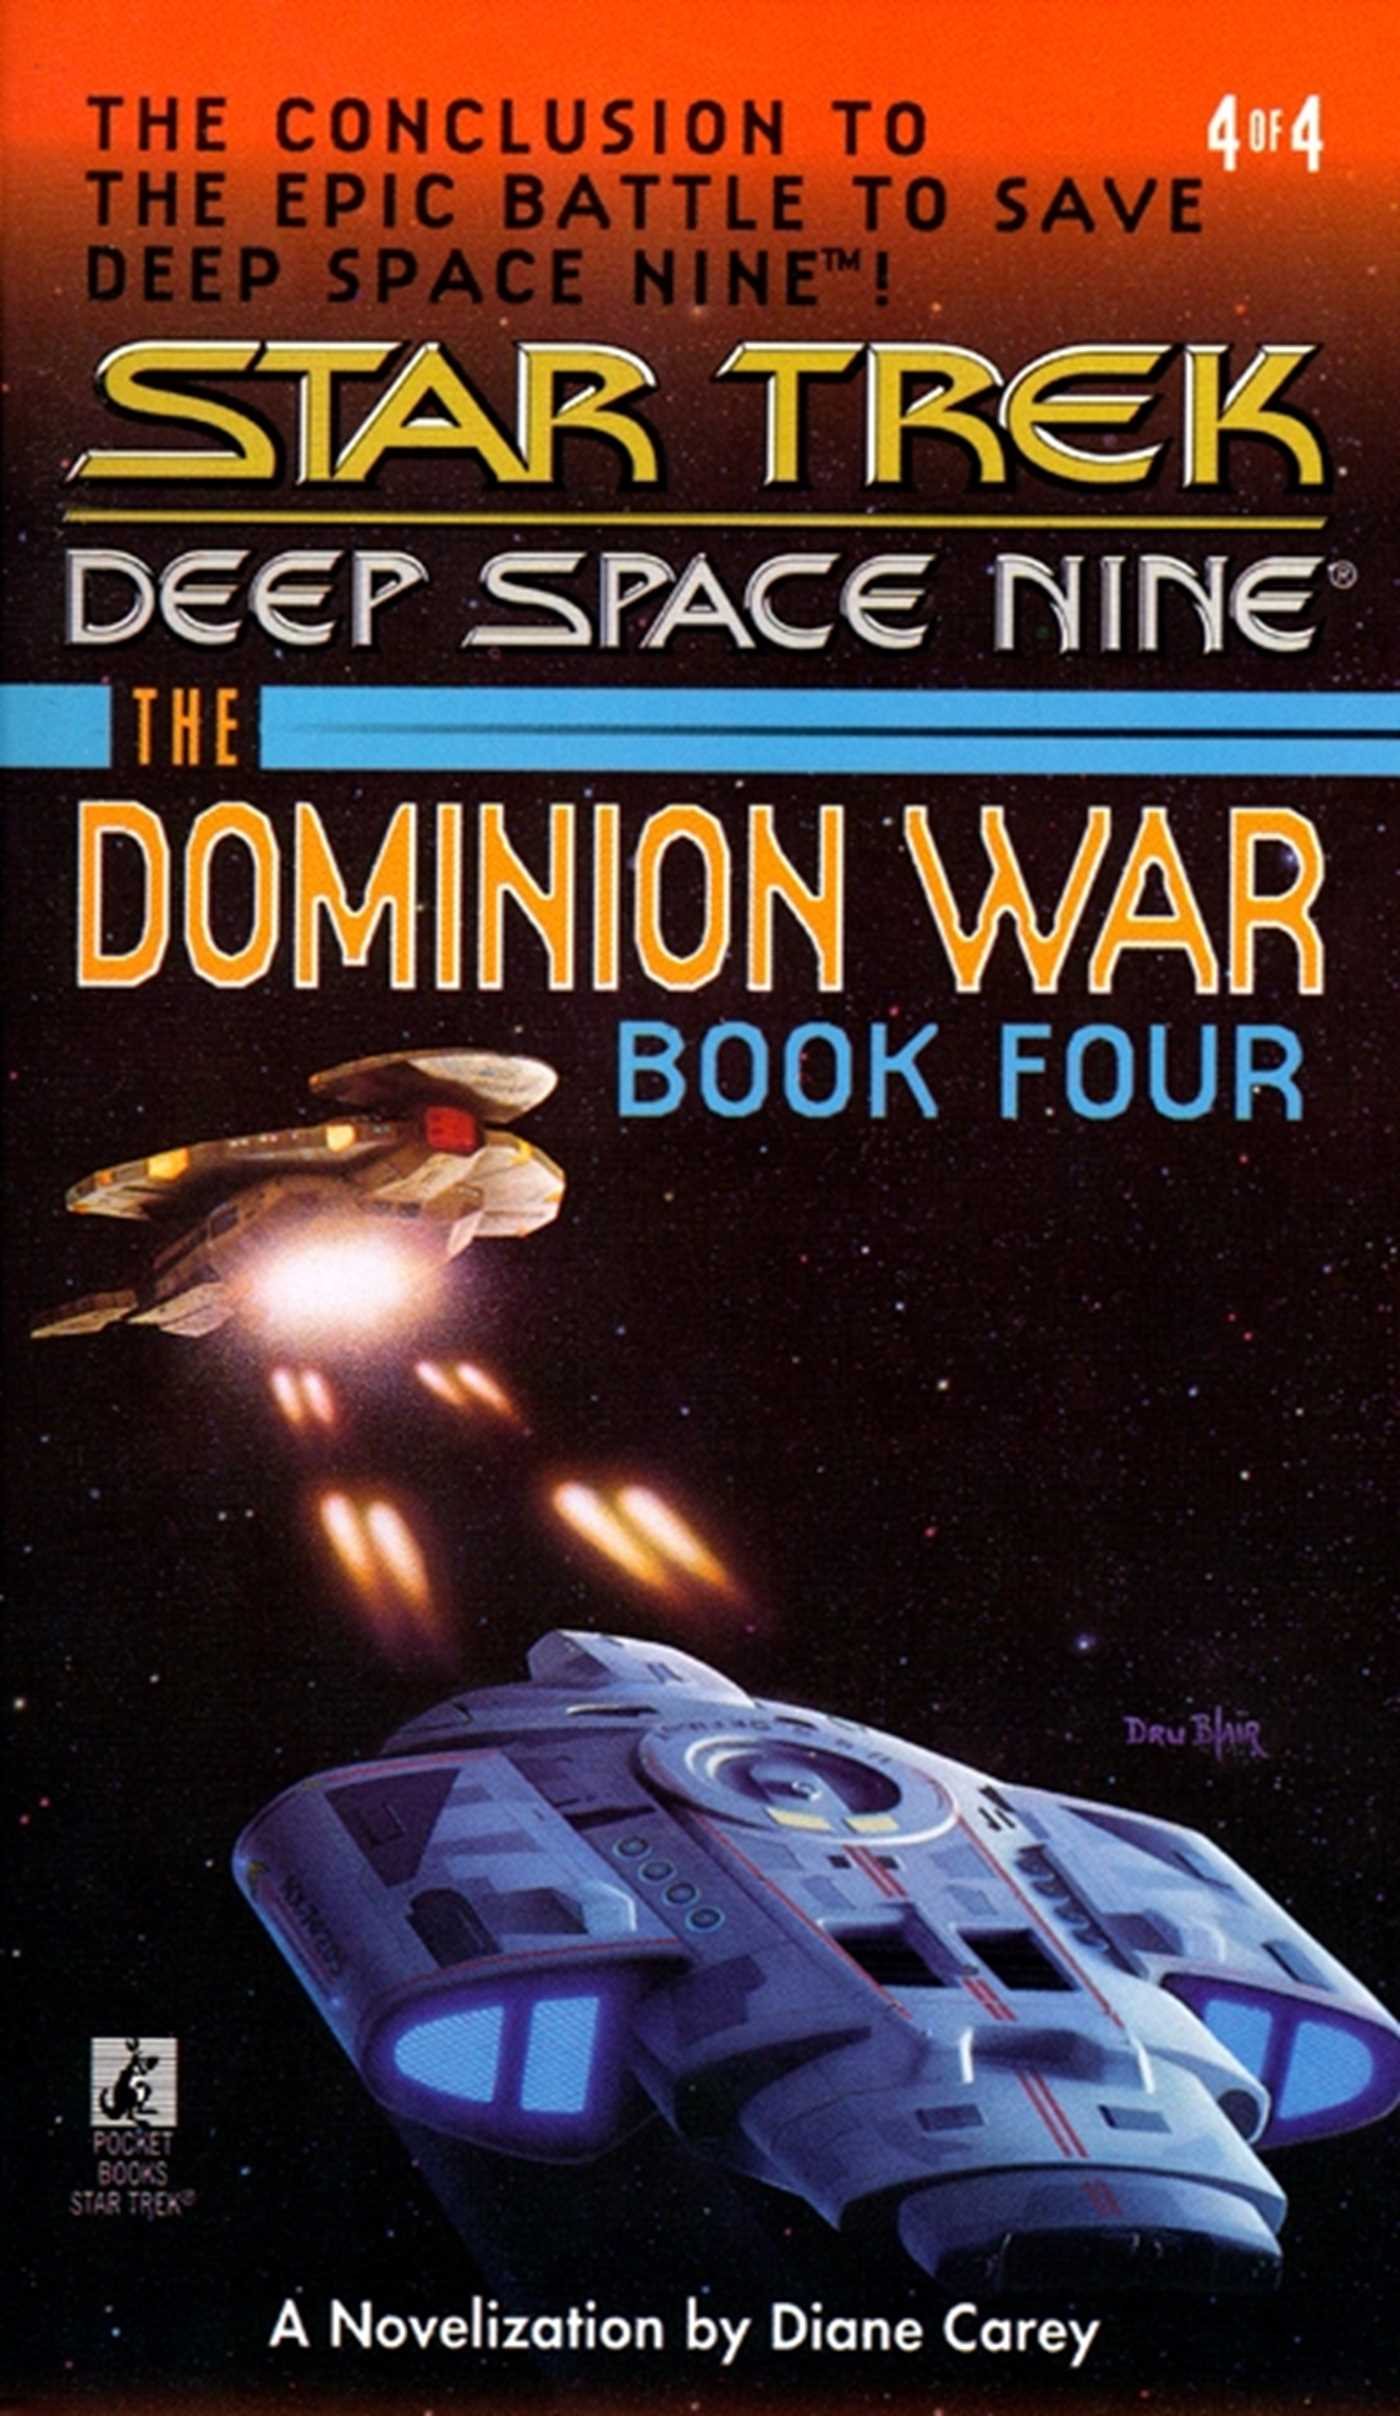 Star trek the dominion war book 4 ebook by diane carey star trek the dominion war book 4 9780671041076 hr fandeluxe Document